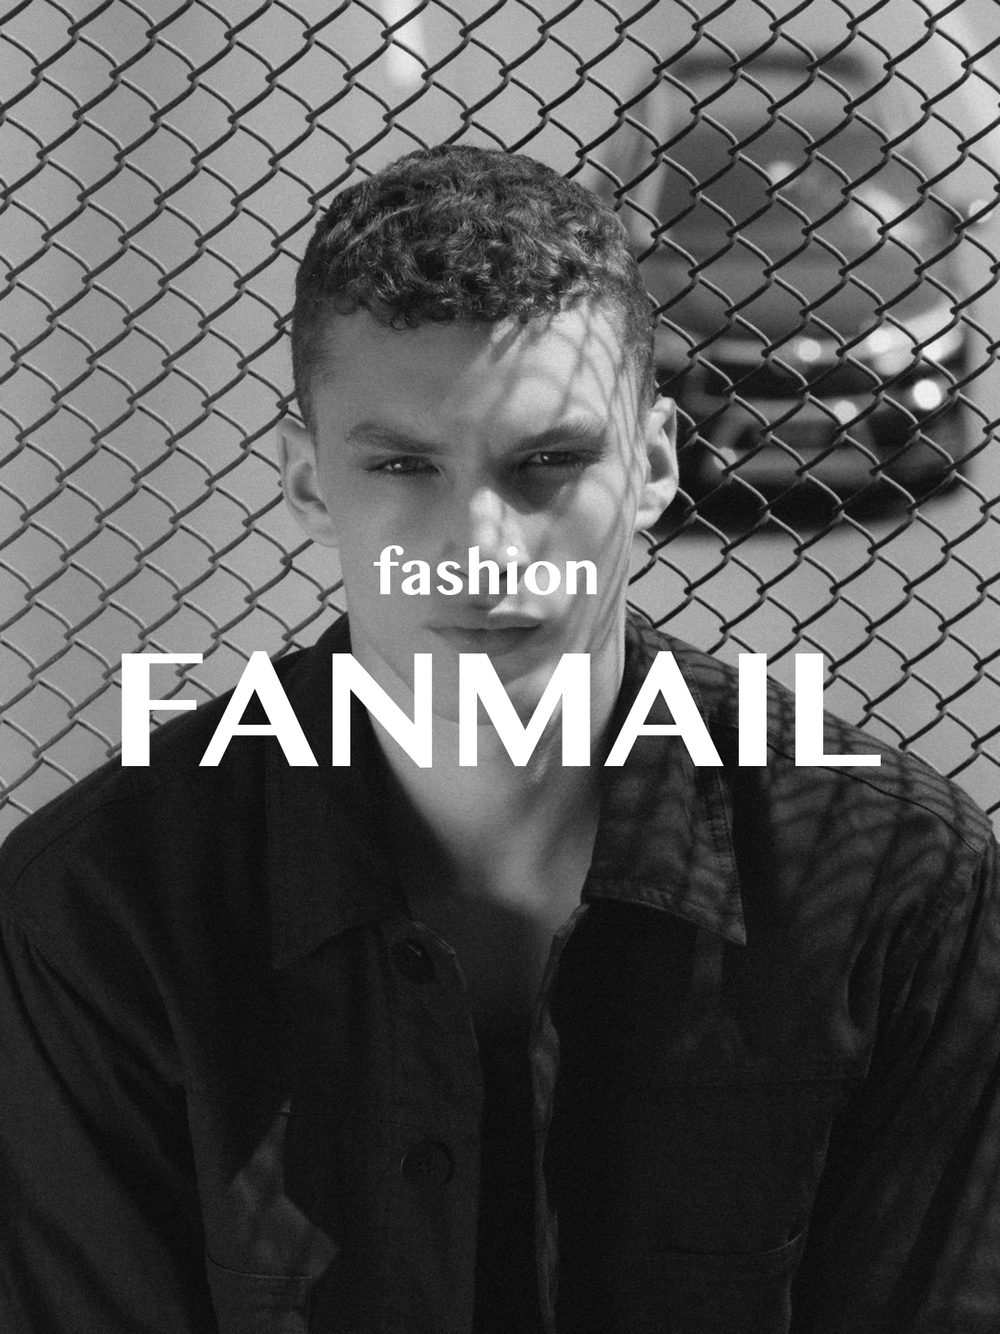 A LINE OF SUSTAINABLE WARDROBE ESSENTIALS MADE IN NEW YORK BY FANMAIL January 20, 2016